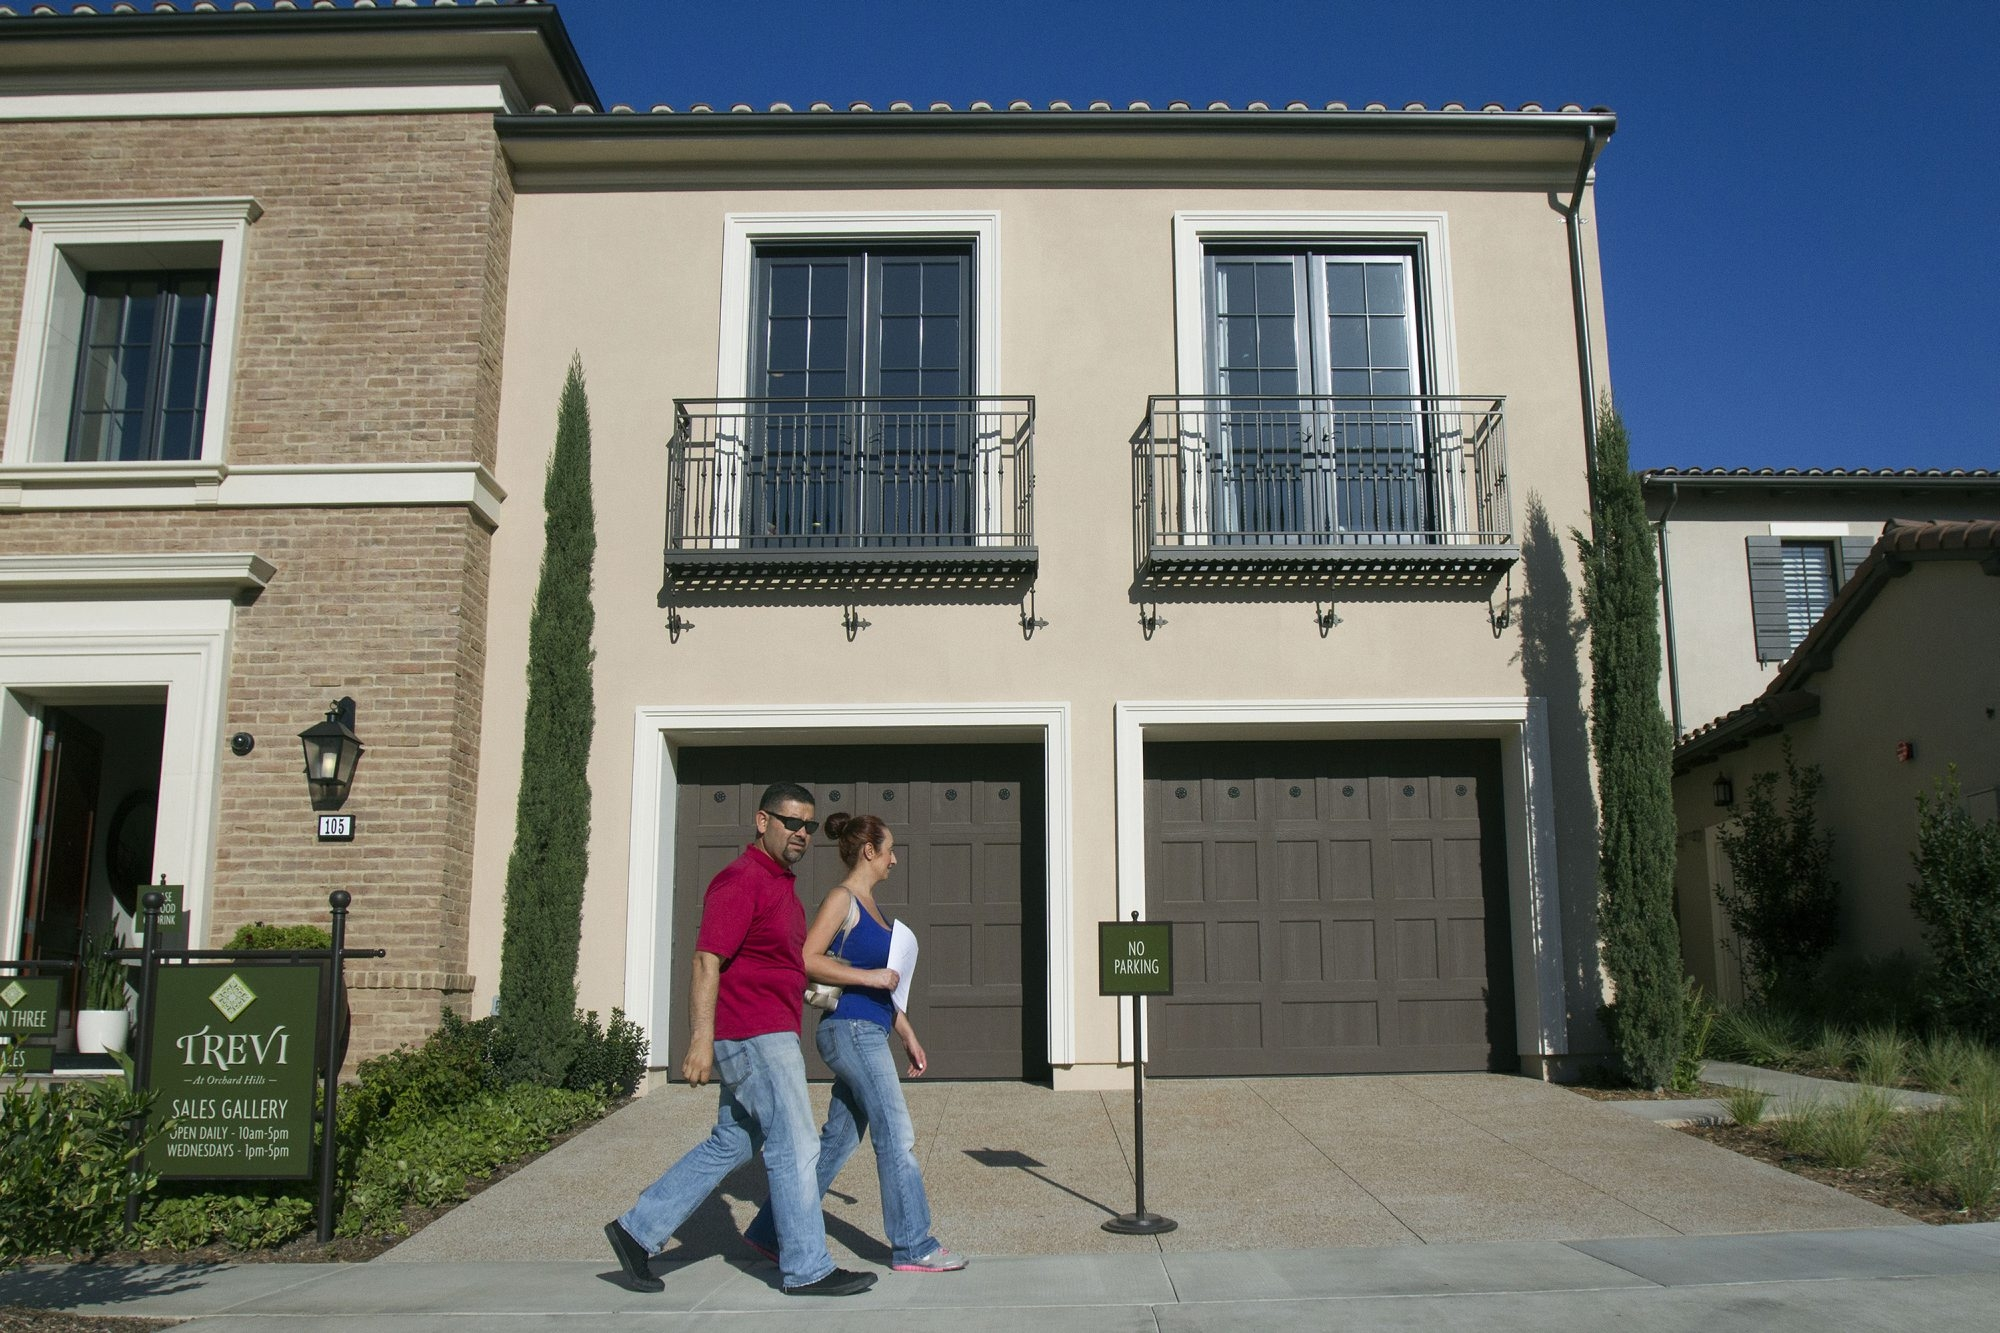 Rafael Lopez, left, and his wife, Jacqueline, step out of a model home at Trevi and Amelia luxury homes on Nov. 21, 2014 in the Orchard Hills community in Irvine, Calif. The housing market has recently been a little sluggish with flat prices and sales numbers decreasing. However, it has been different for the rich, who have been buying more luxury home sales in Southern California. (Cheryl A. Guerrero/ Los Angeles Times/TNS)